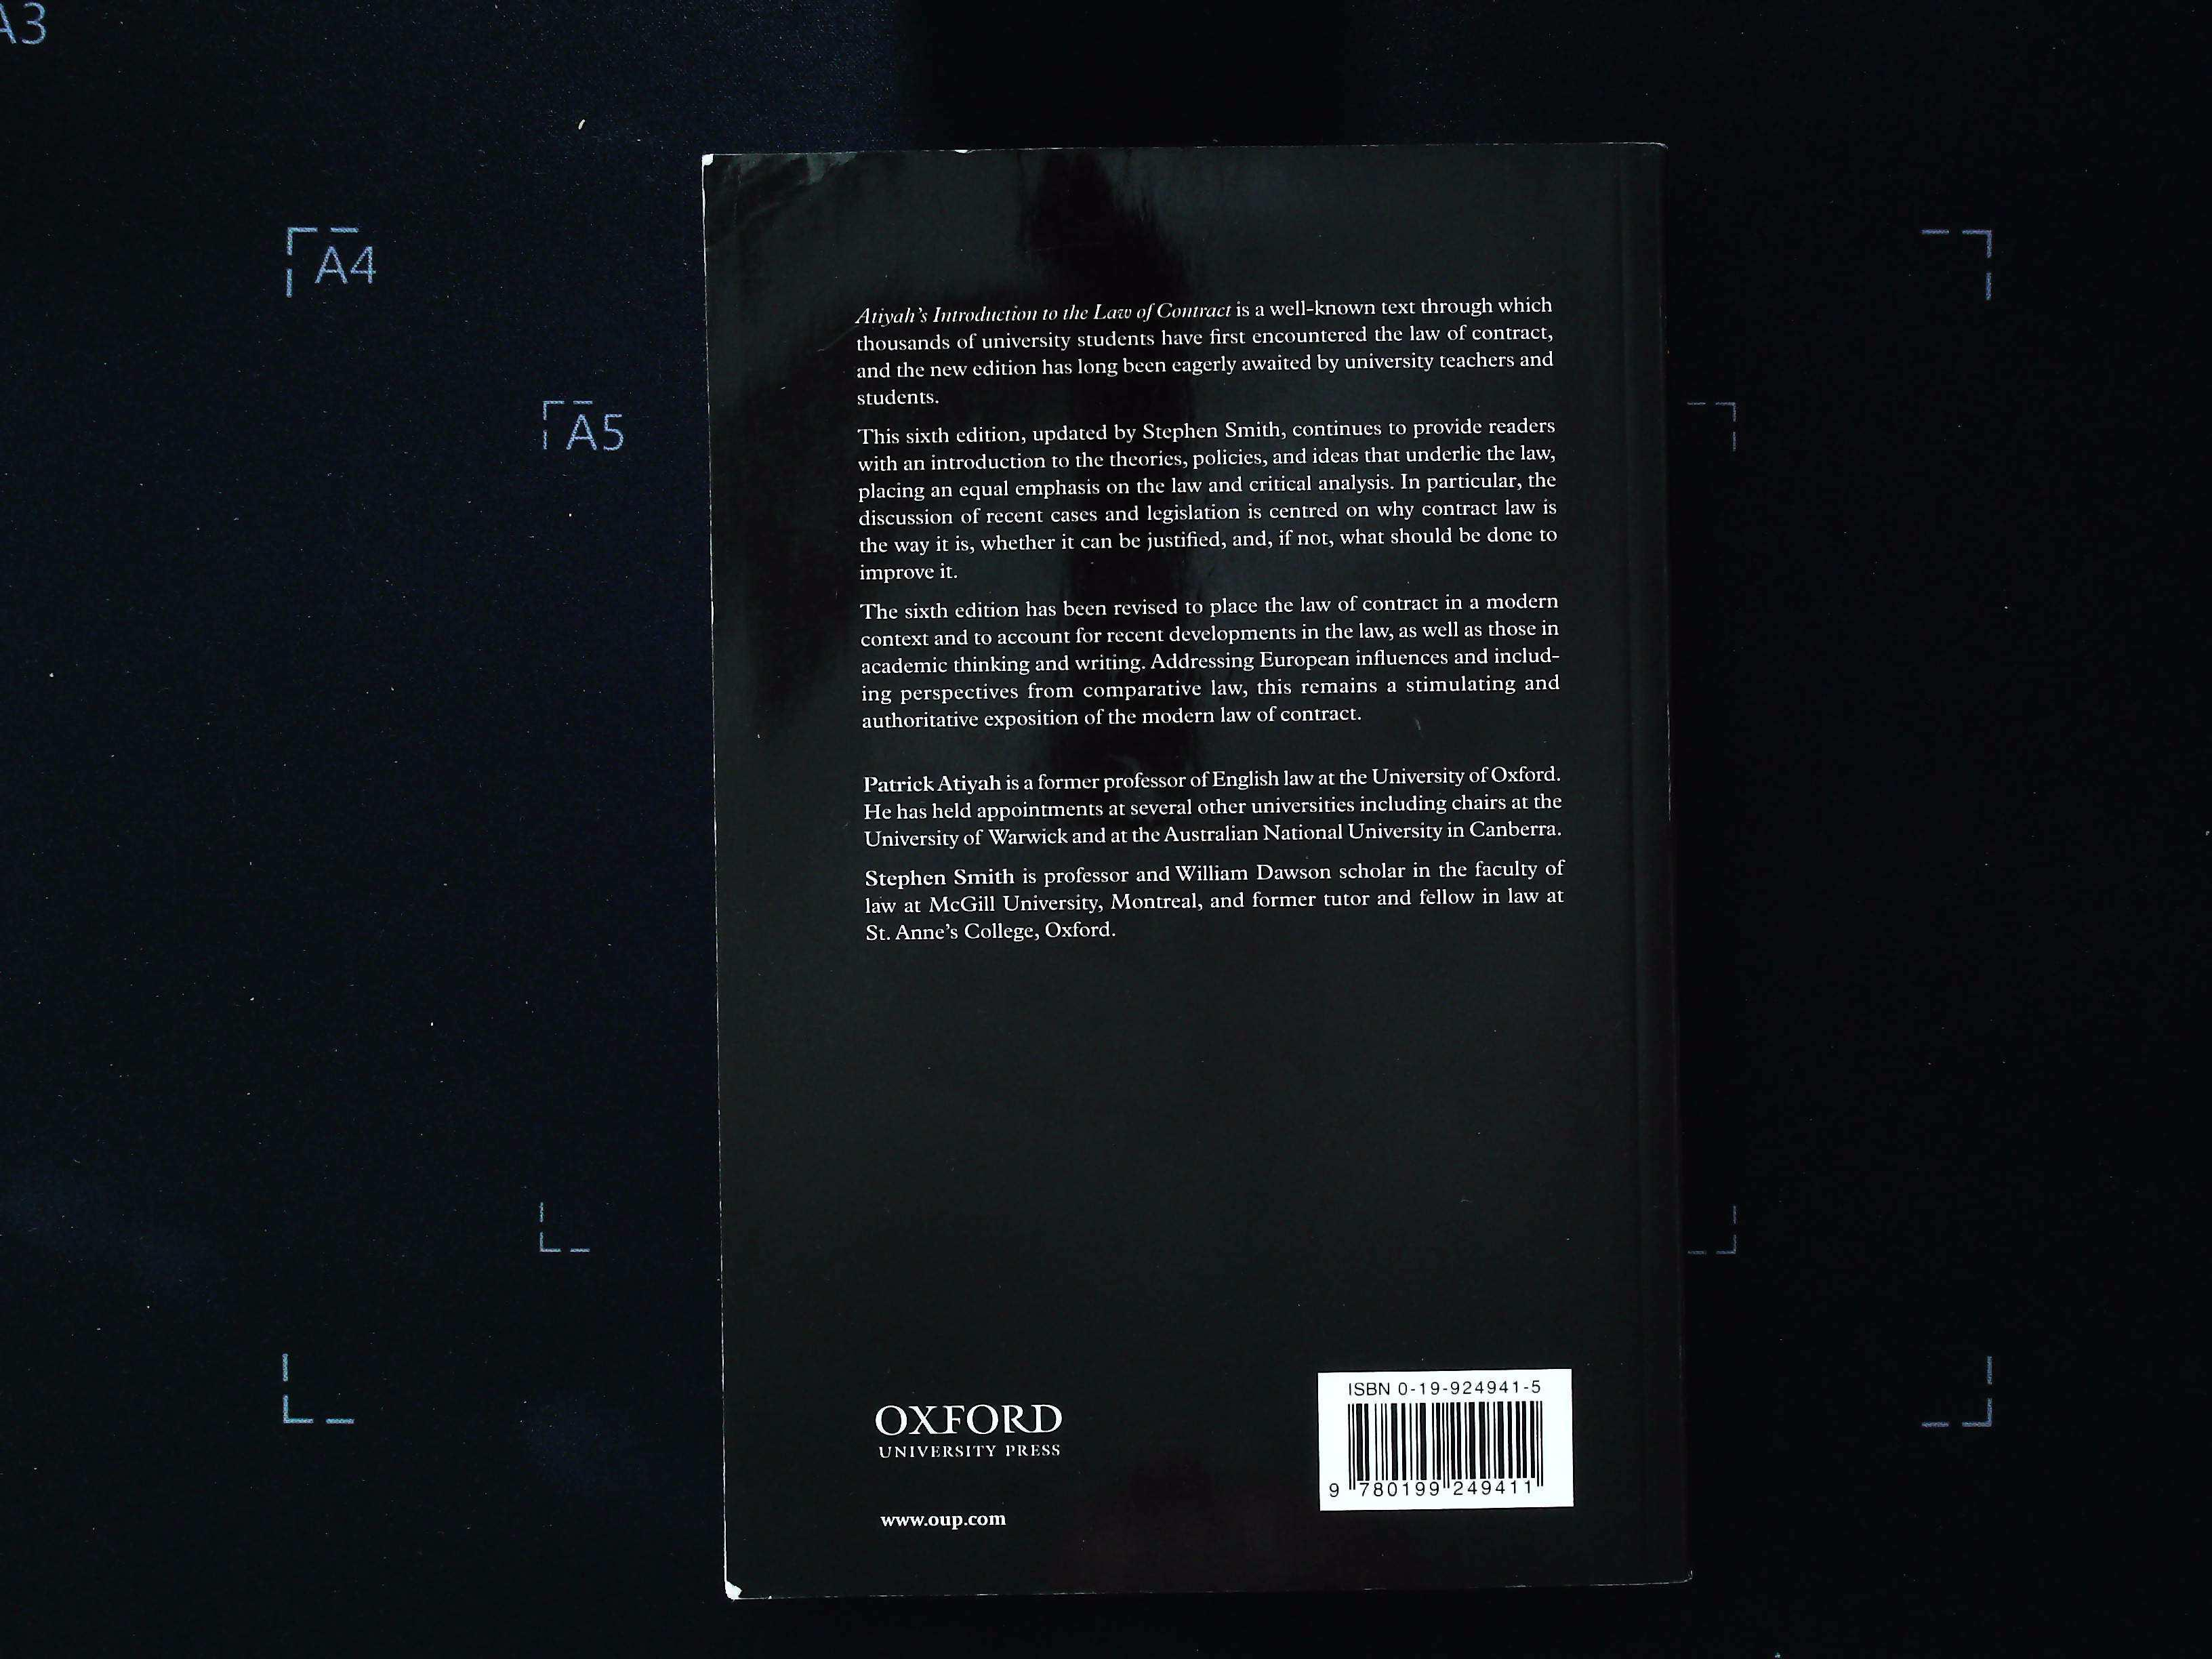 Atiyah's Introduction To The Law Contract 6th Edition paperback book by Stephen A Smith. Published - Image 2 of 3